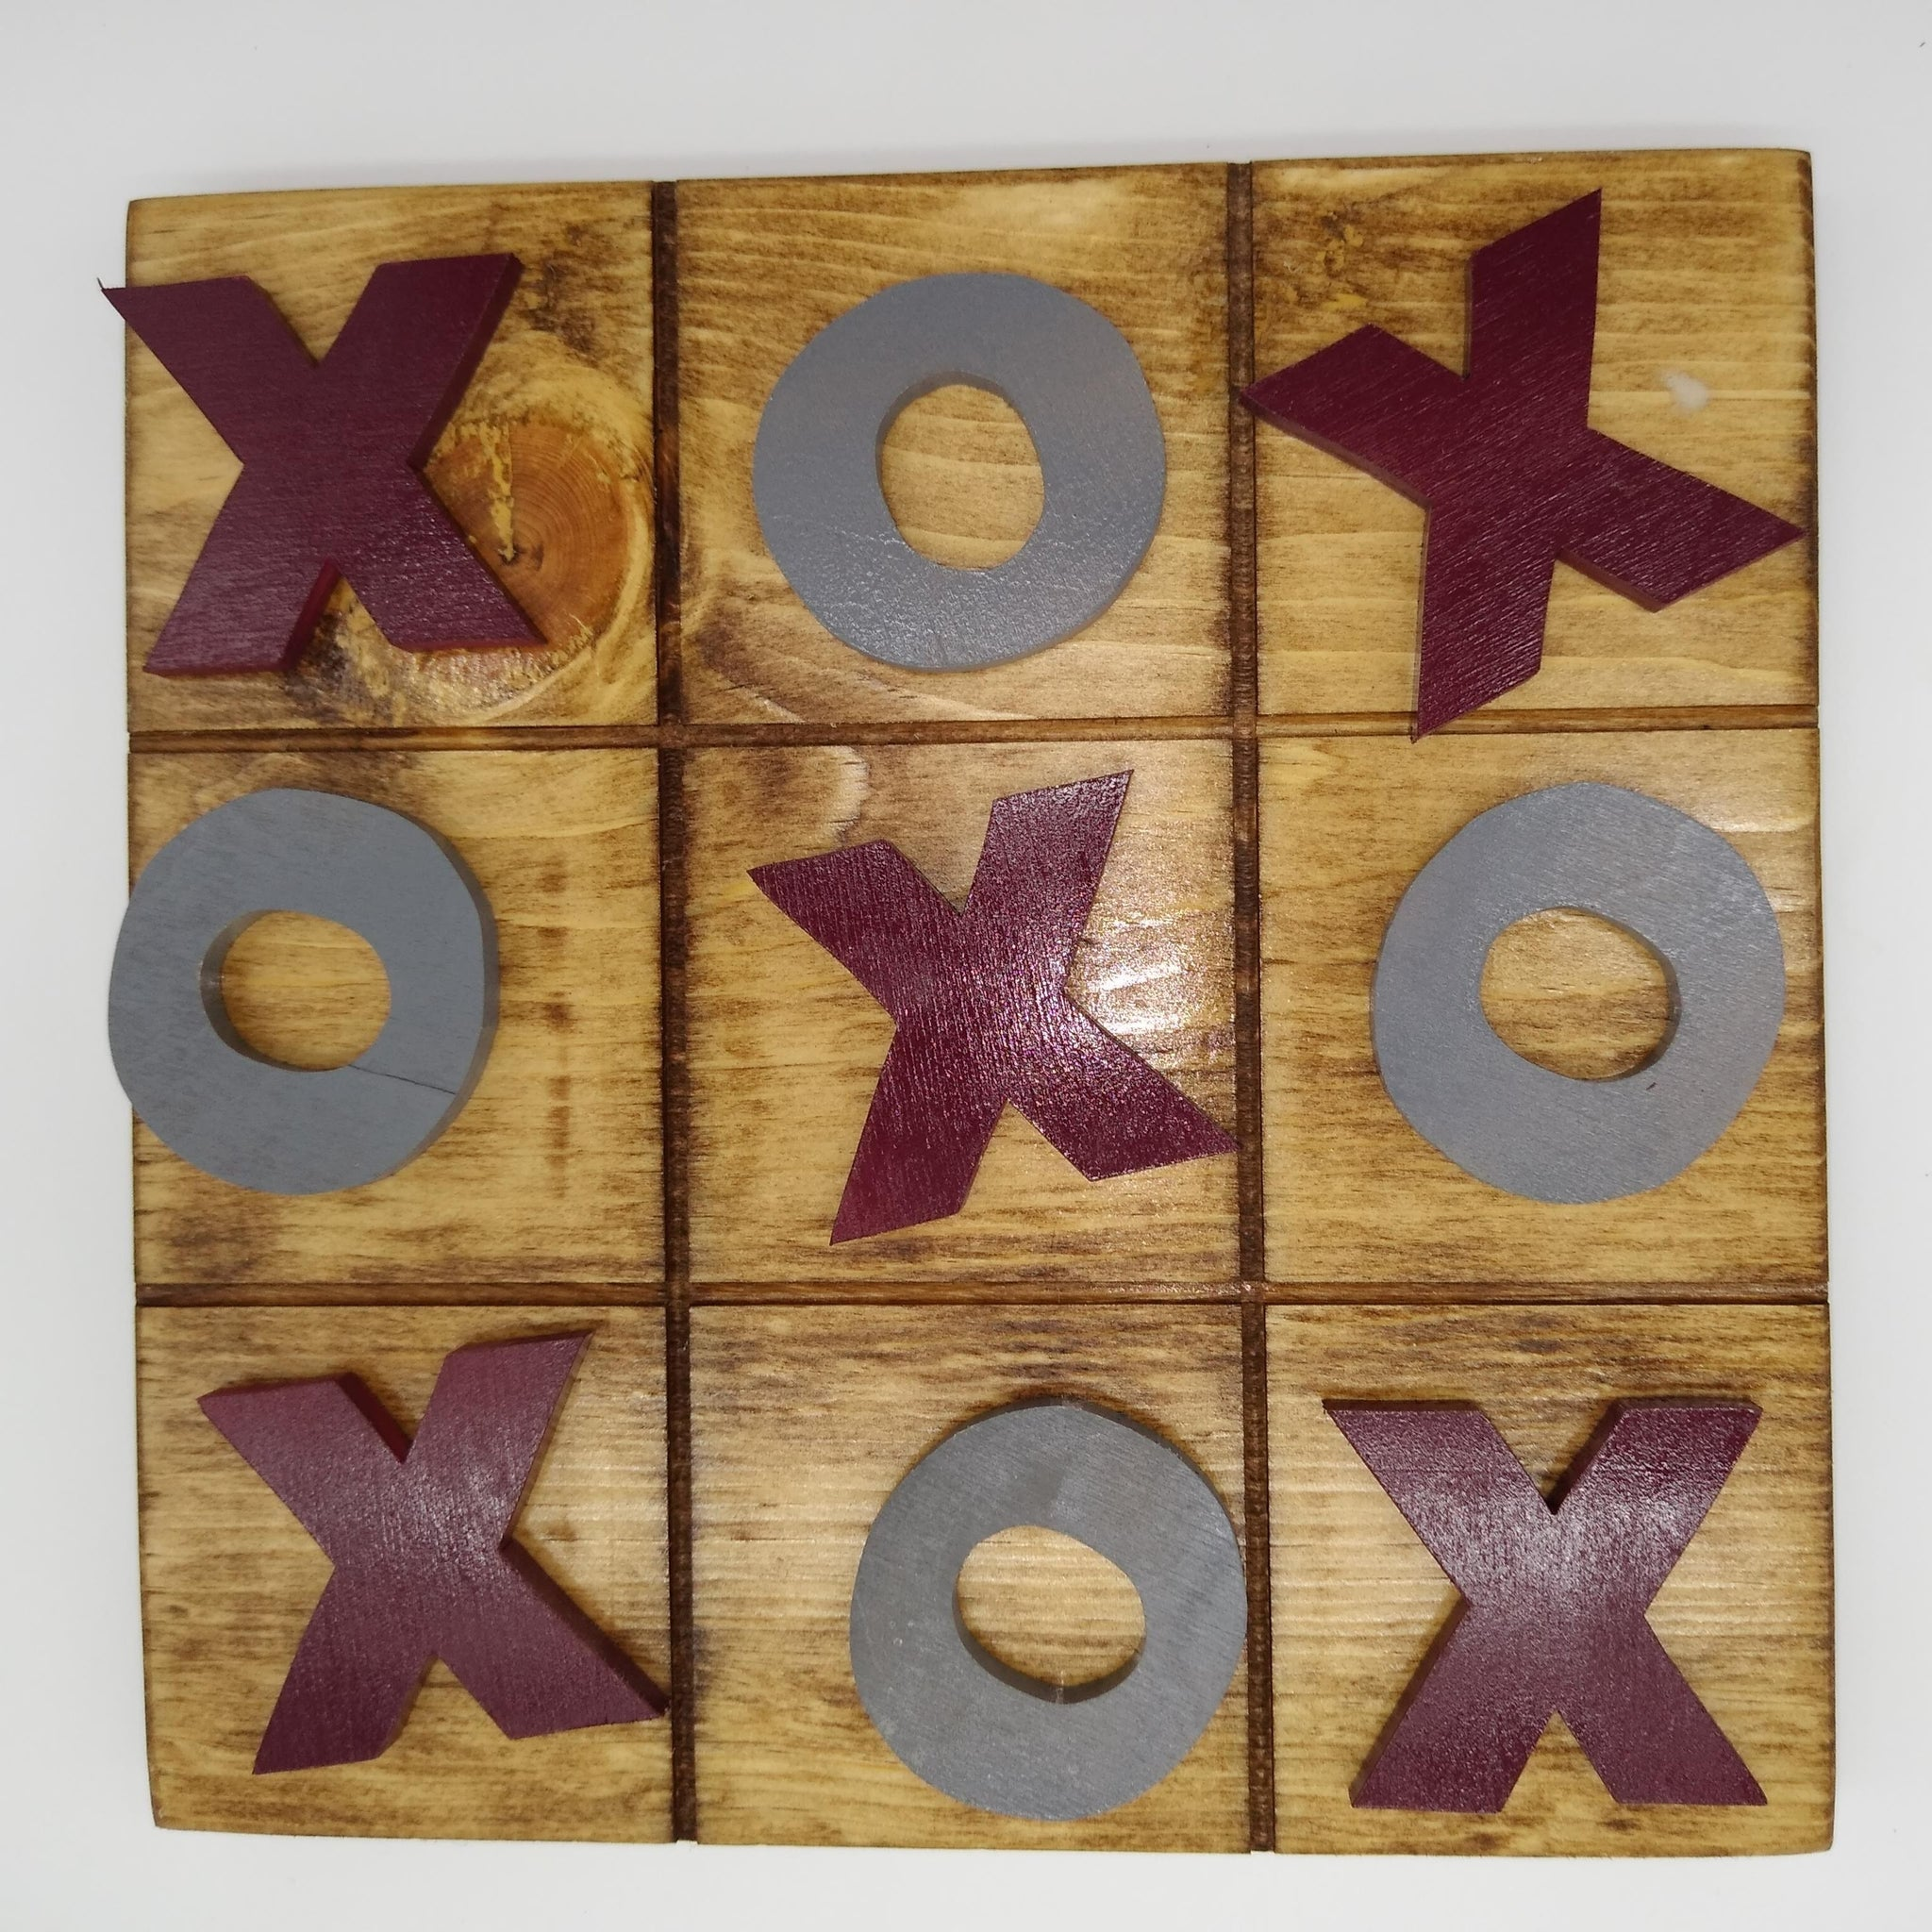 Tic Tac Toe Board Texas A&M Aggies